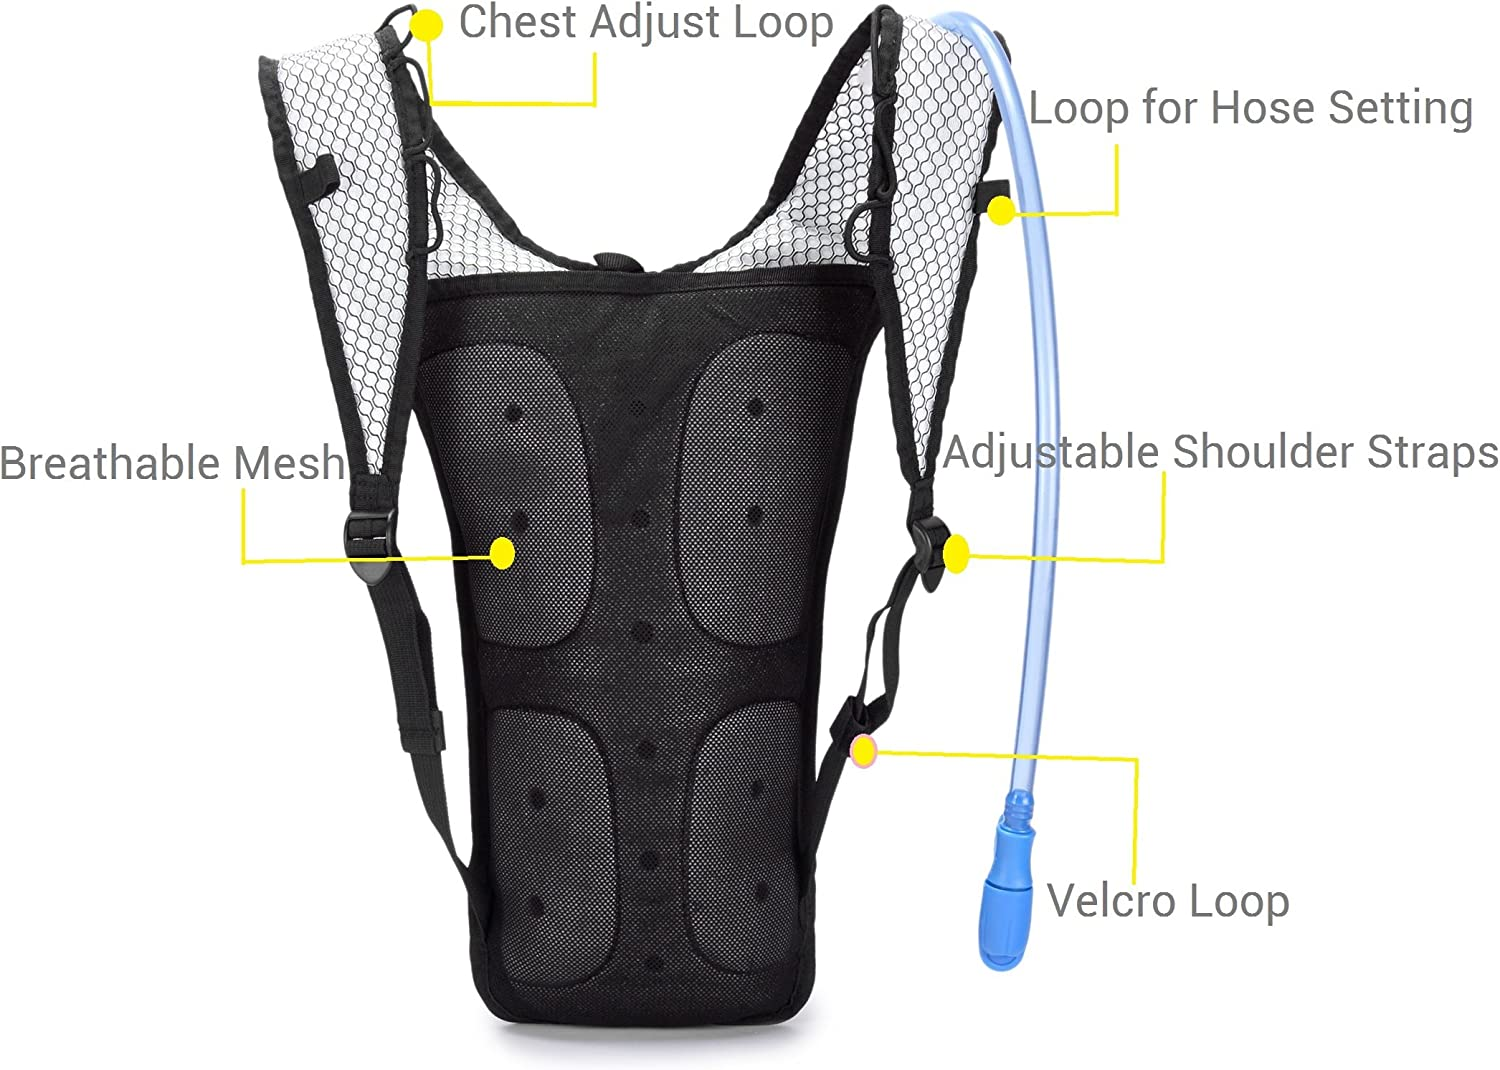 Mubasel Gear Hydration Backpack Pack with 2L BPA Free Bladder - Lightweight Pack Keeps Liquid Cool Up to 4 Hours - Great Storage Compartments - Outdoor Sports Gear for Running Hiking Cycling Skiing : Sports & Outdoors